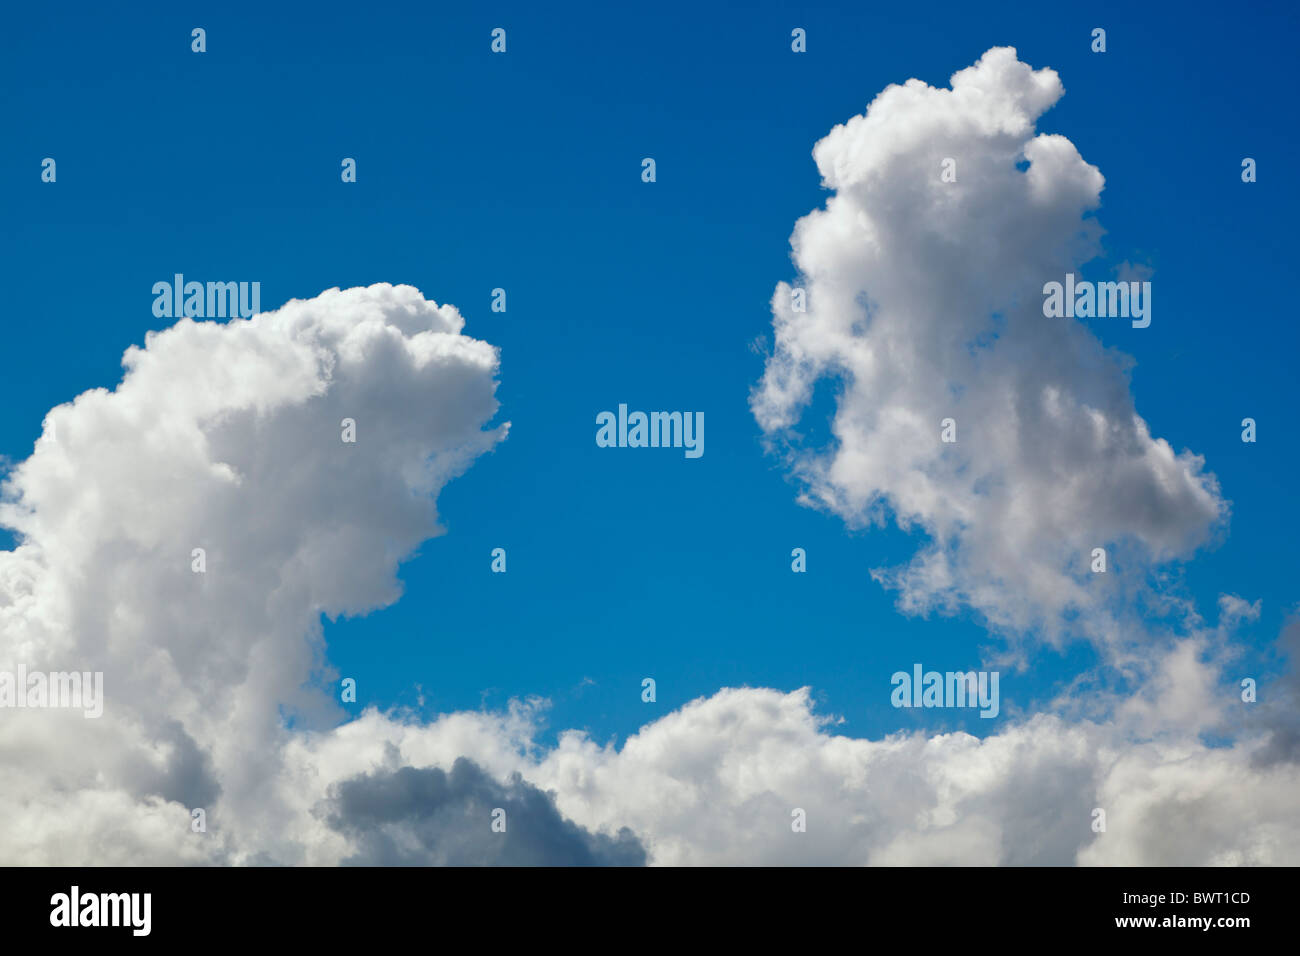 Cumulus clouds billowing against a blue sky - Stock Image